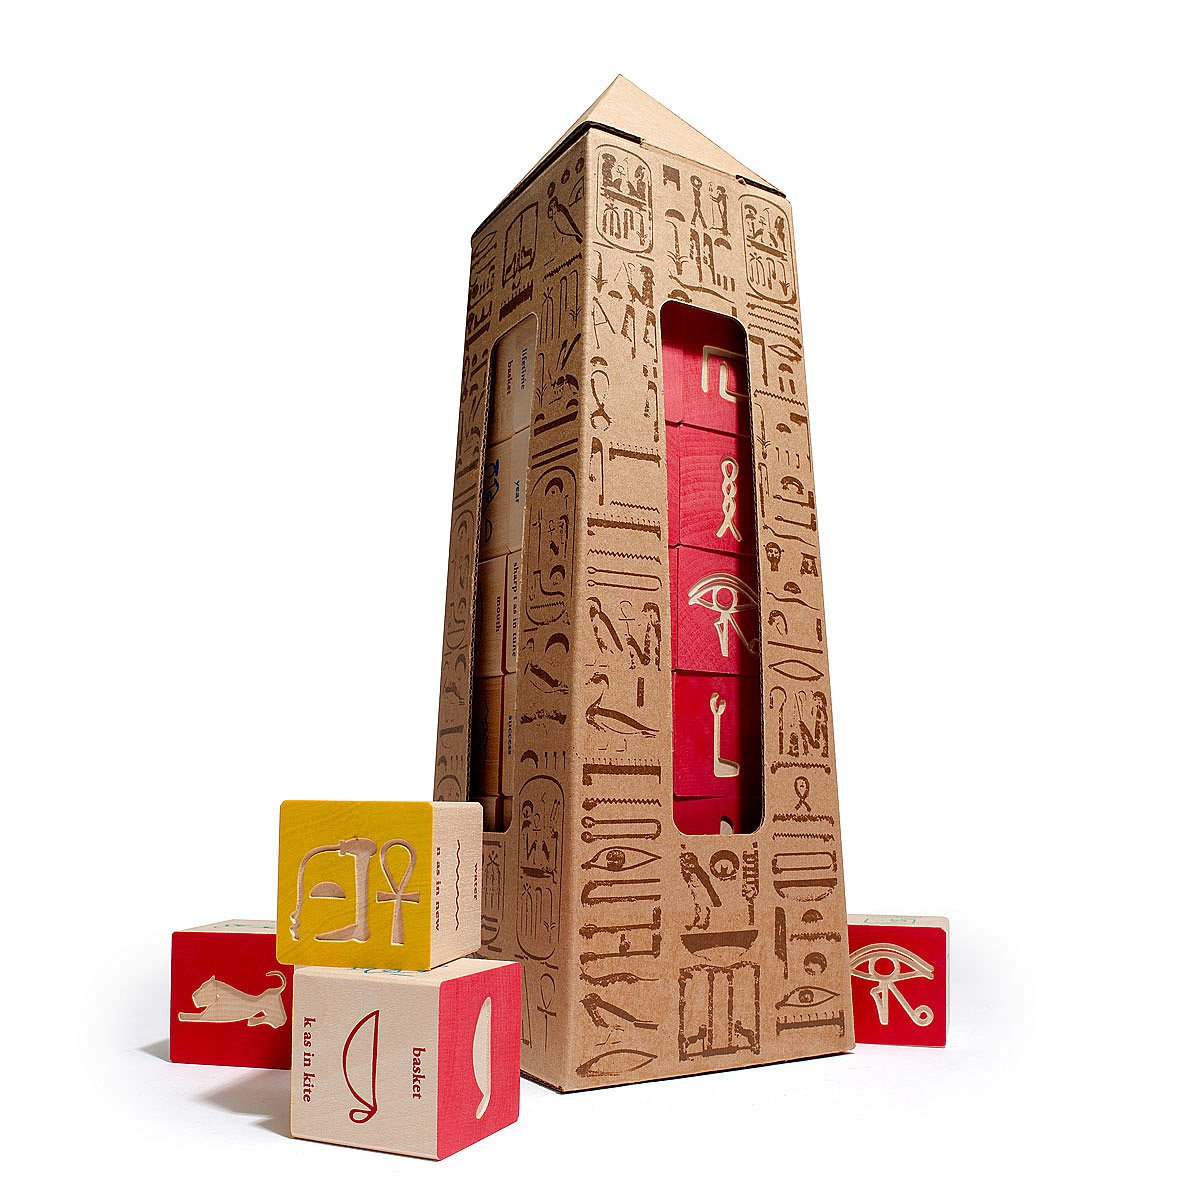 Egyptian Hieroglyphic Blocks